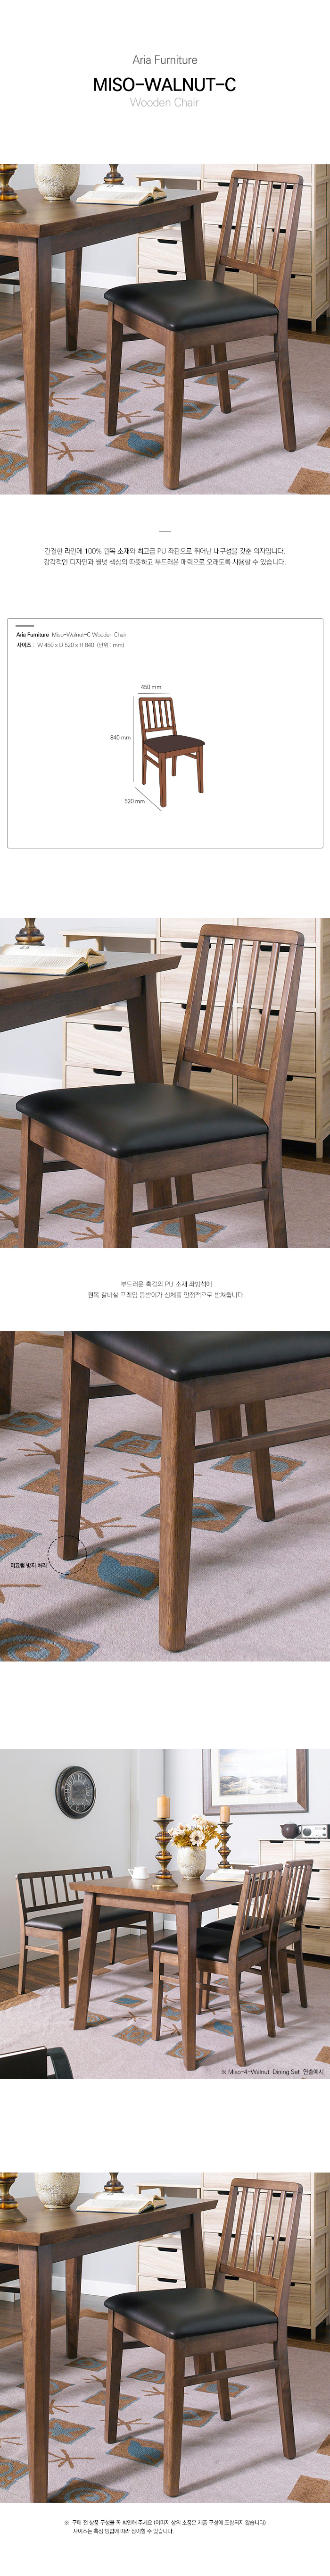 Miso-Walnut_Chair_180611.jpg